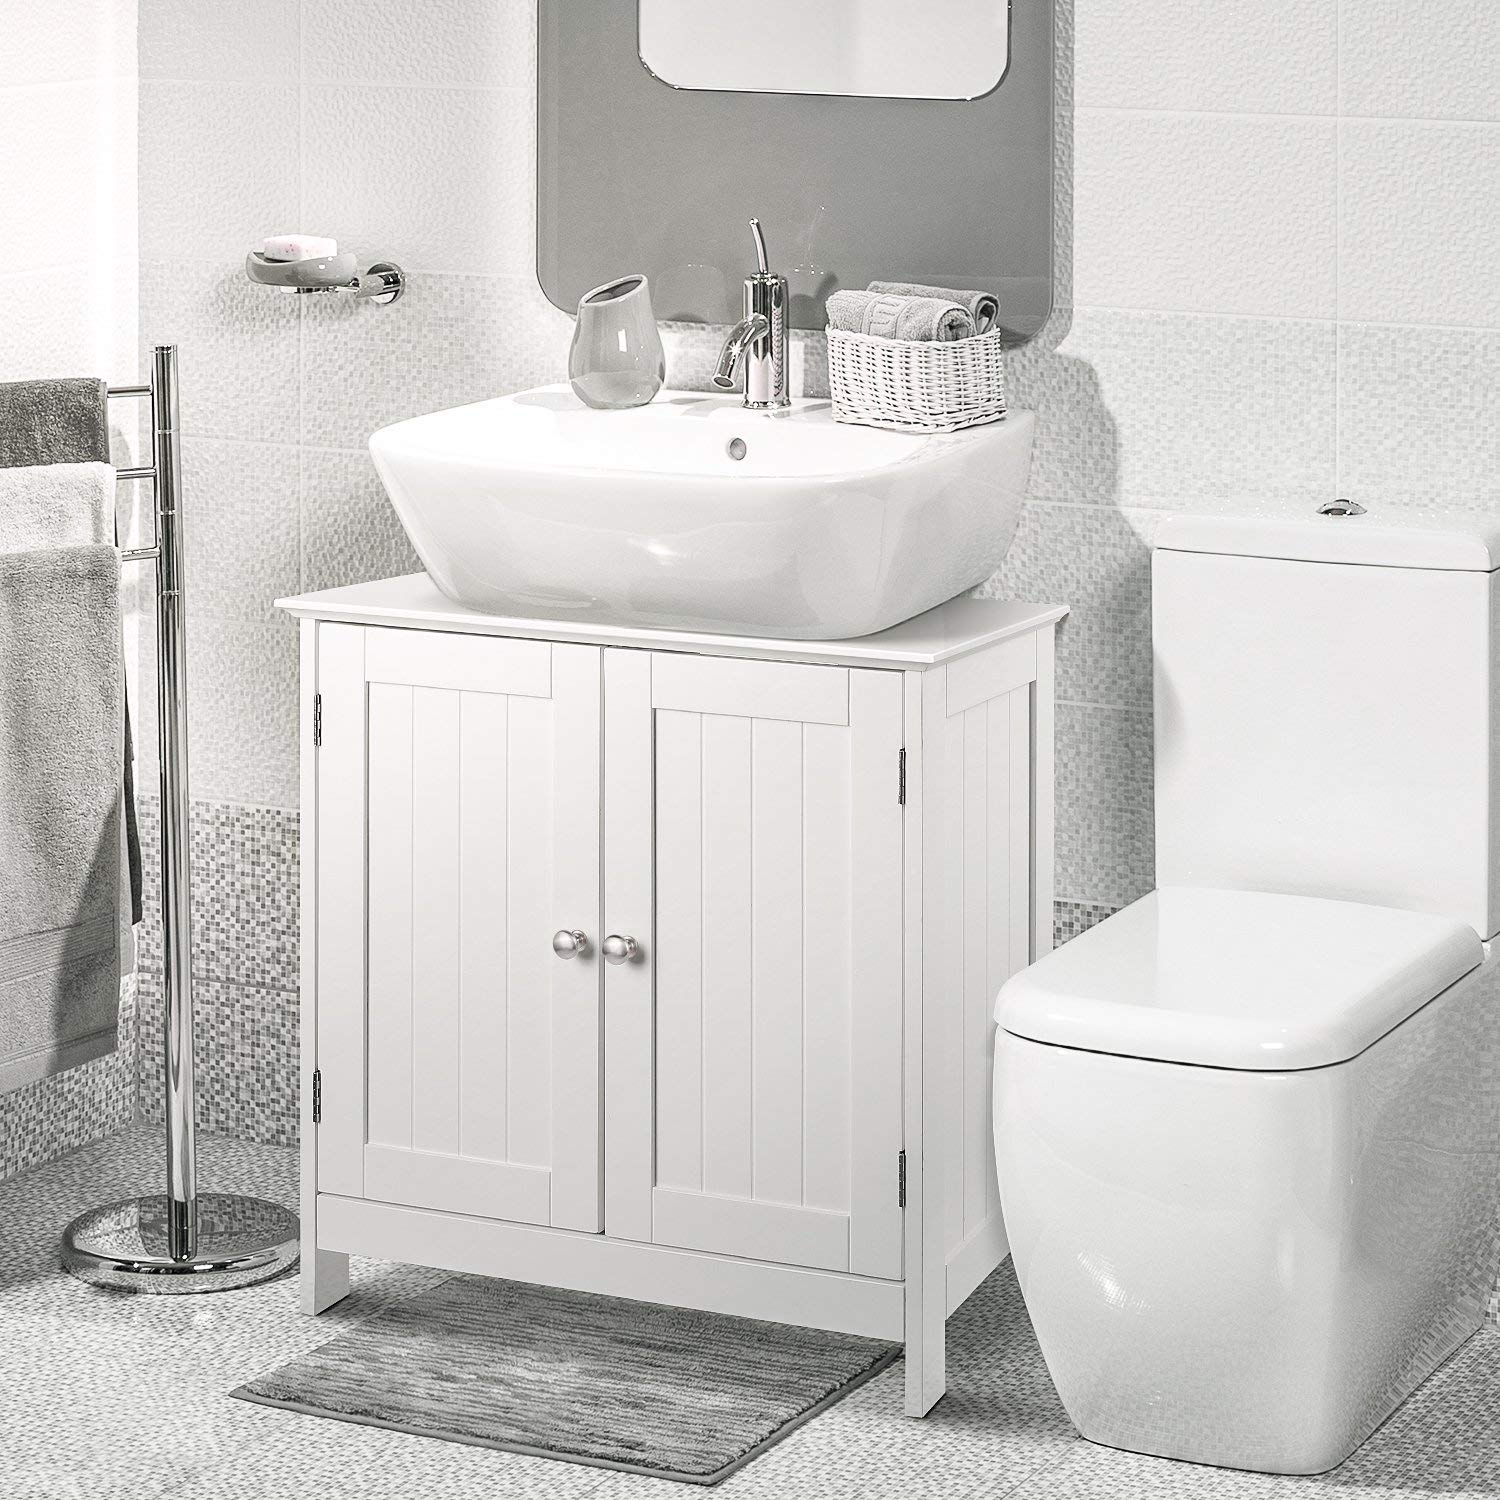 New Sink Storage Bathroom Vanity Cabinet Space Saver Organizer White Ebay